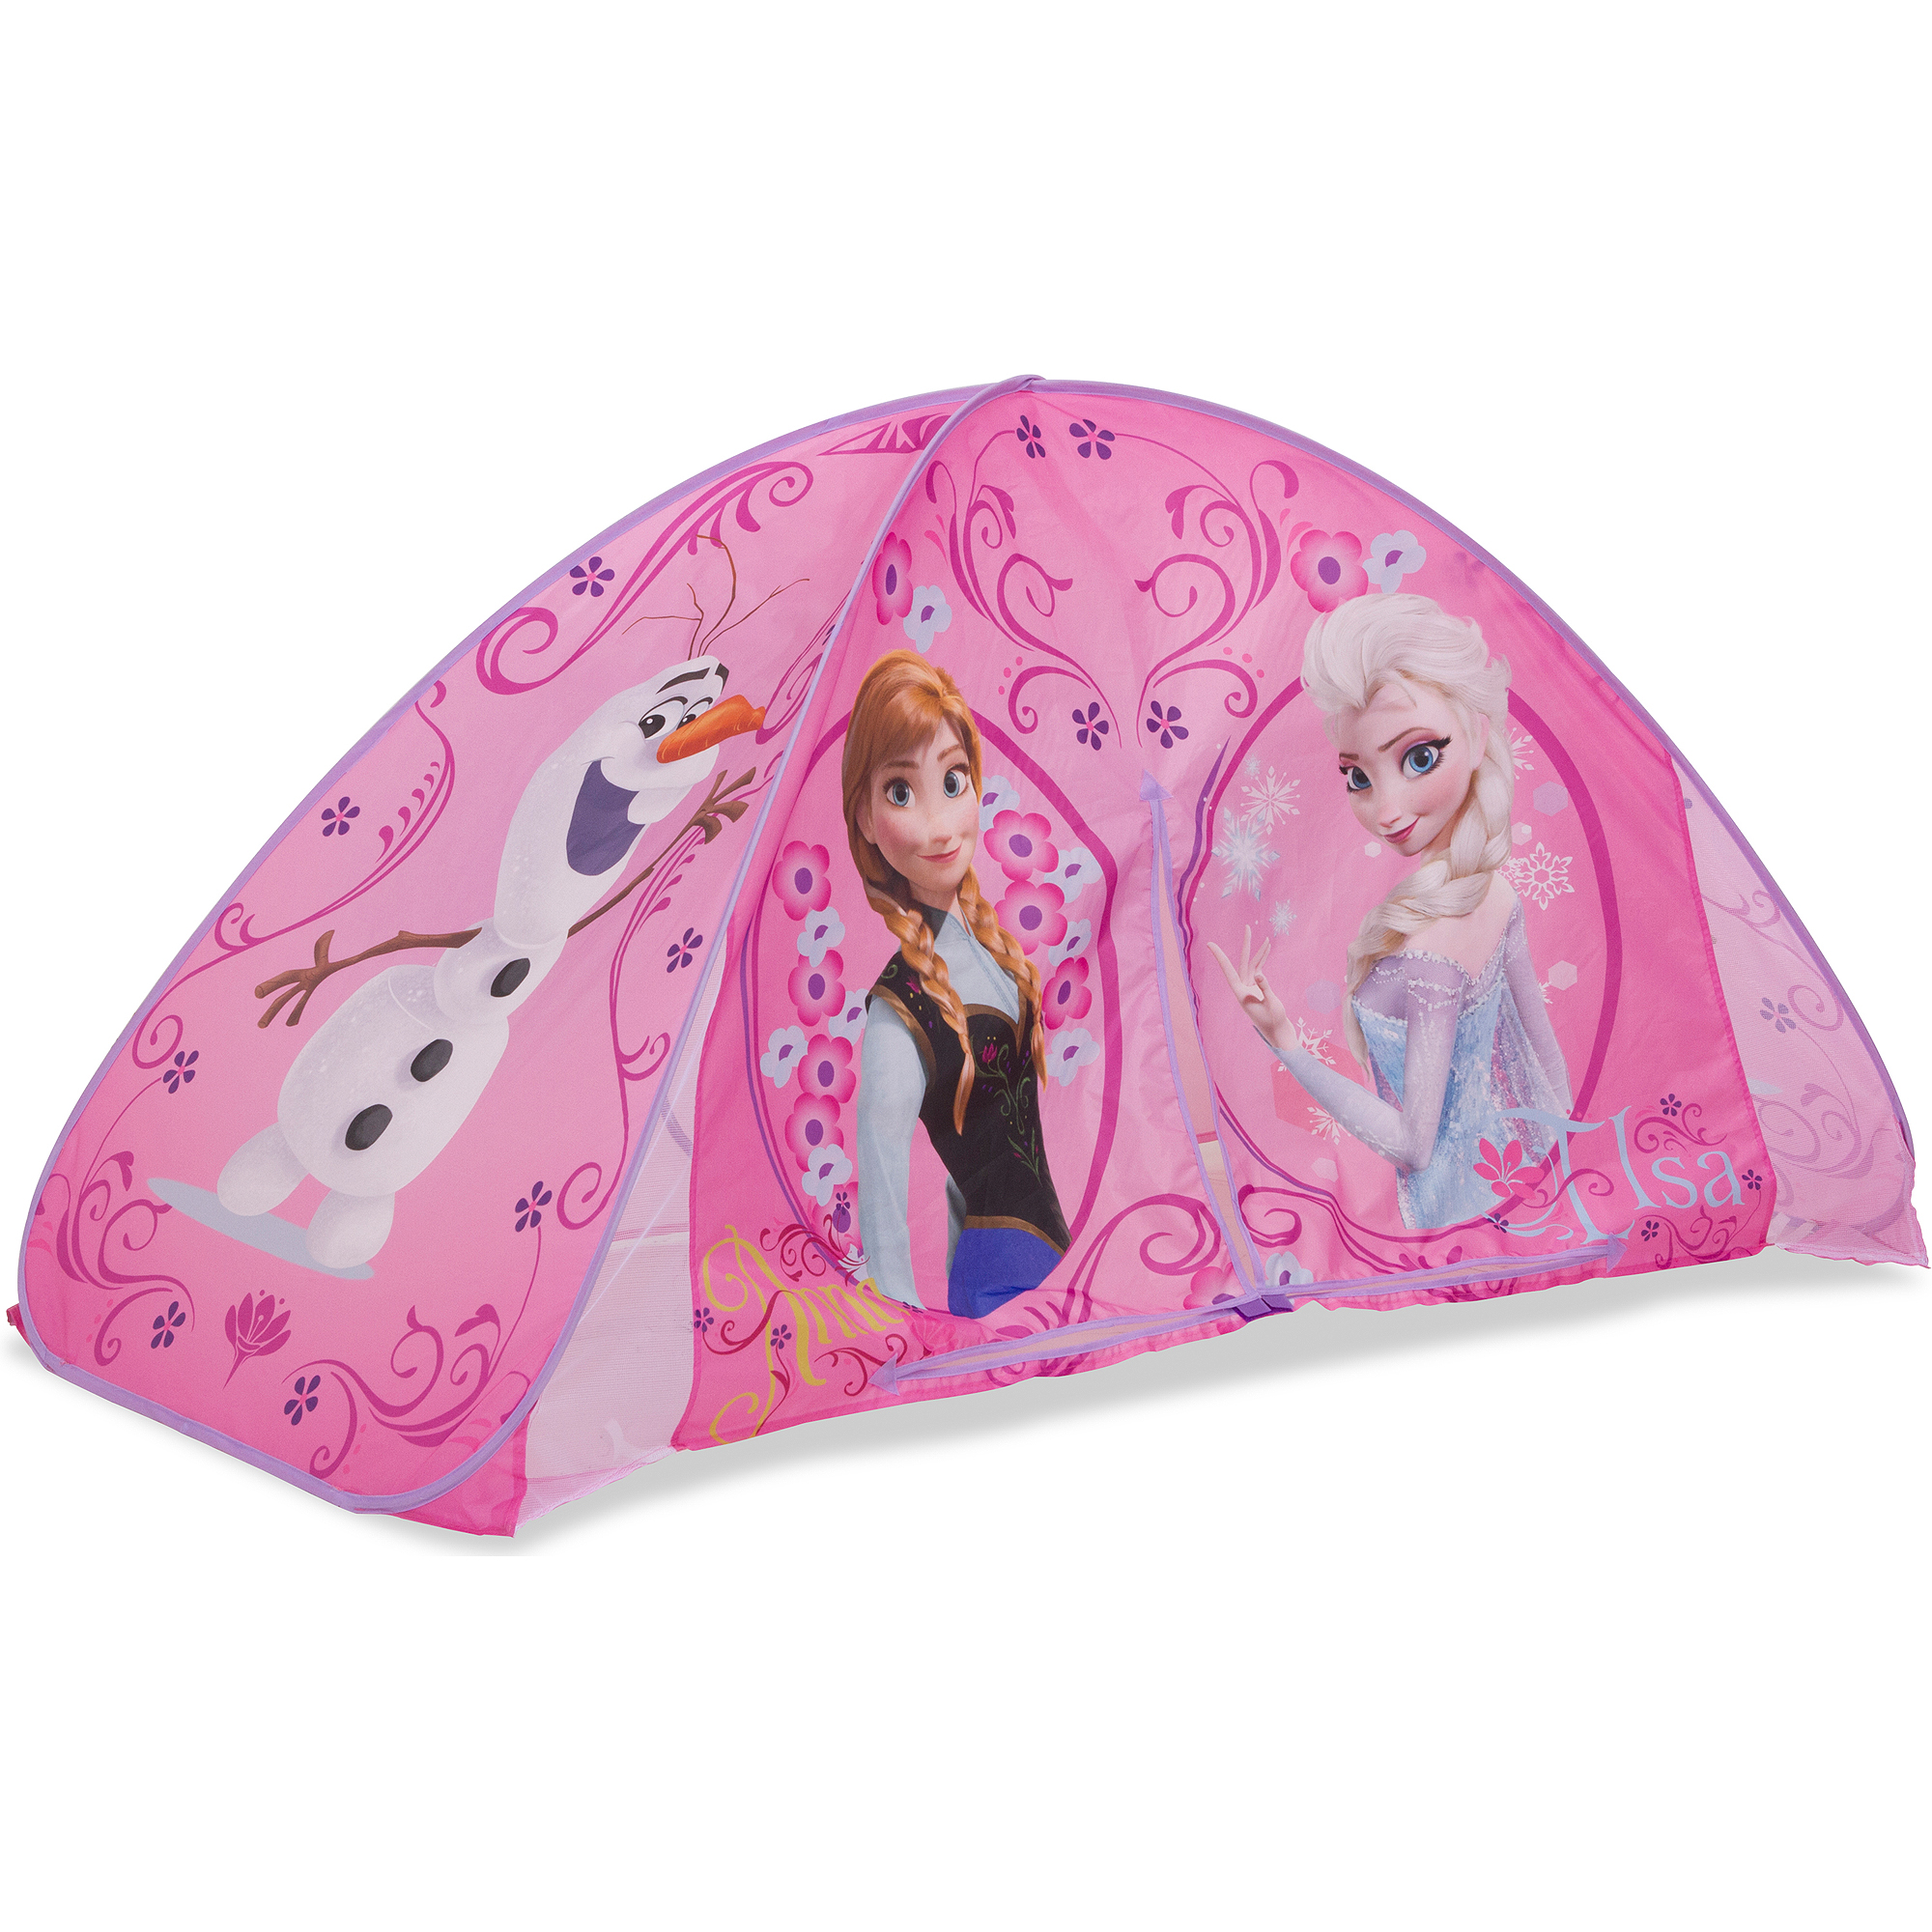 sc 1 st  Walmart : girls indoor tents - memphite.com